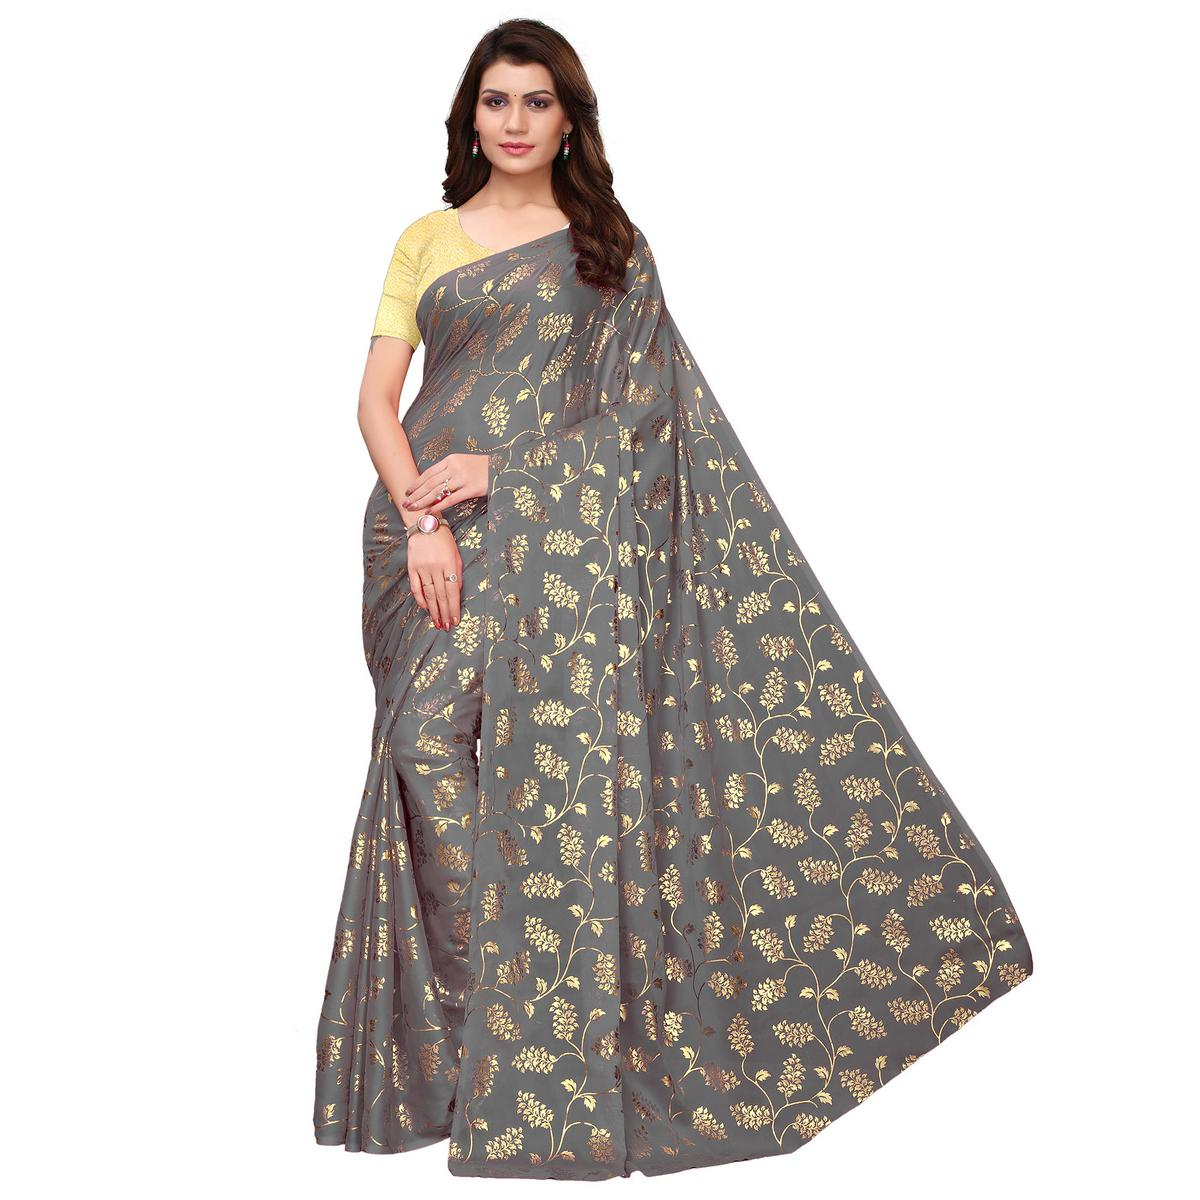 Blooming Grey Colored Party Wear Foil Printed Georgette Saree